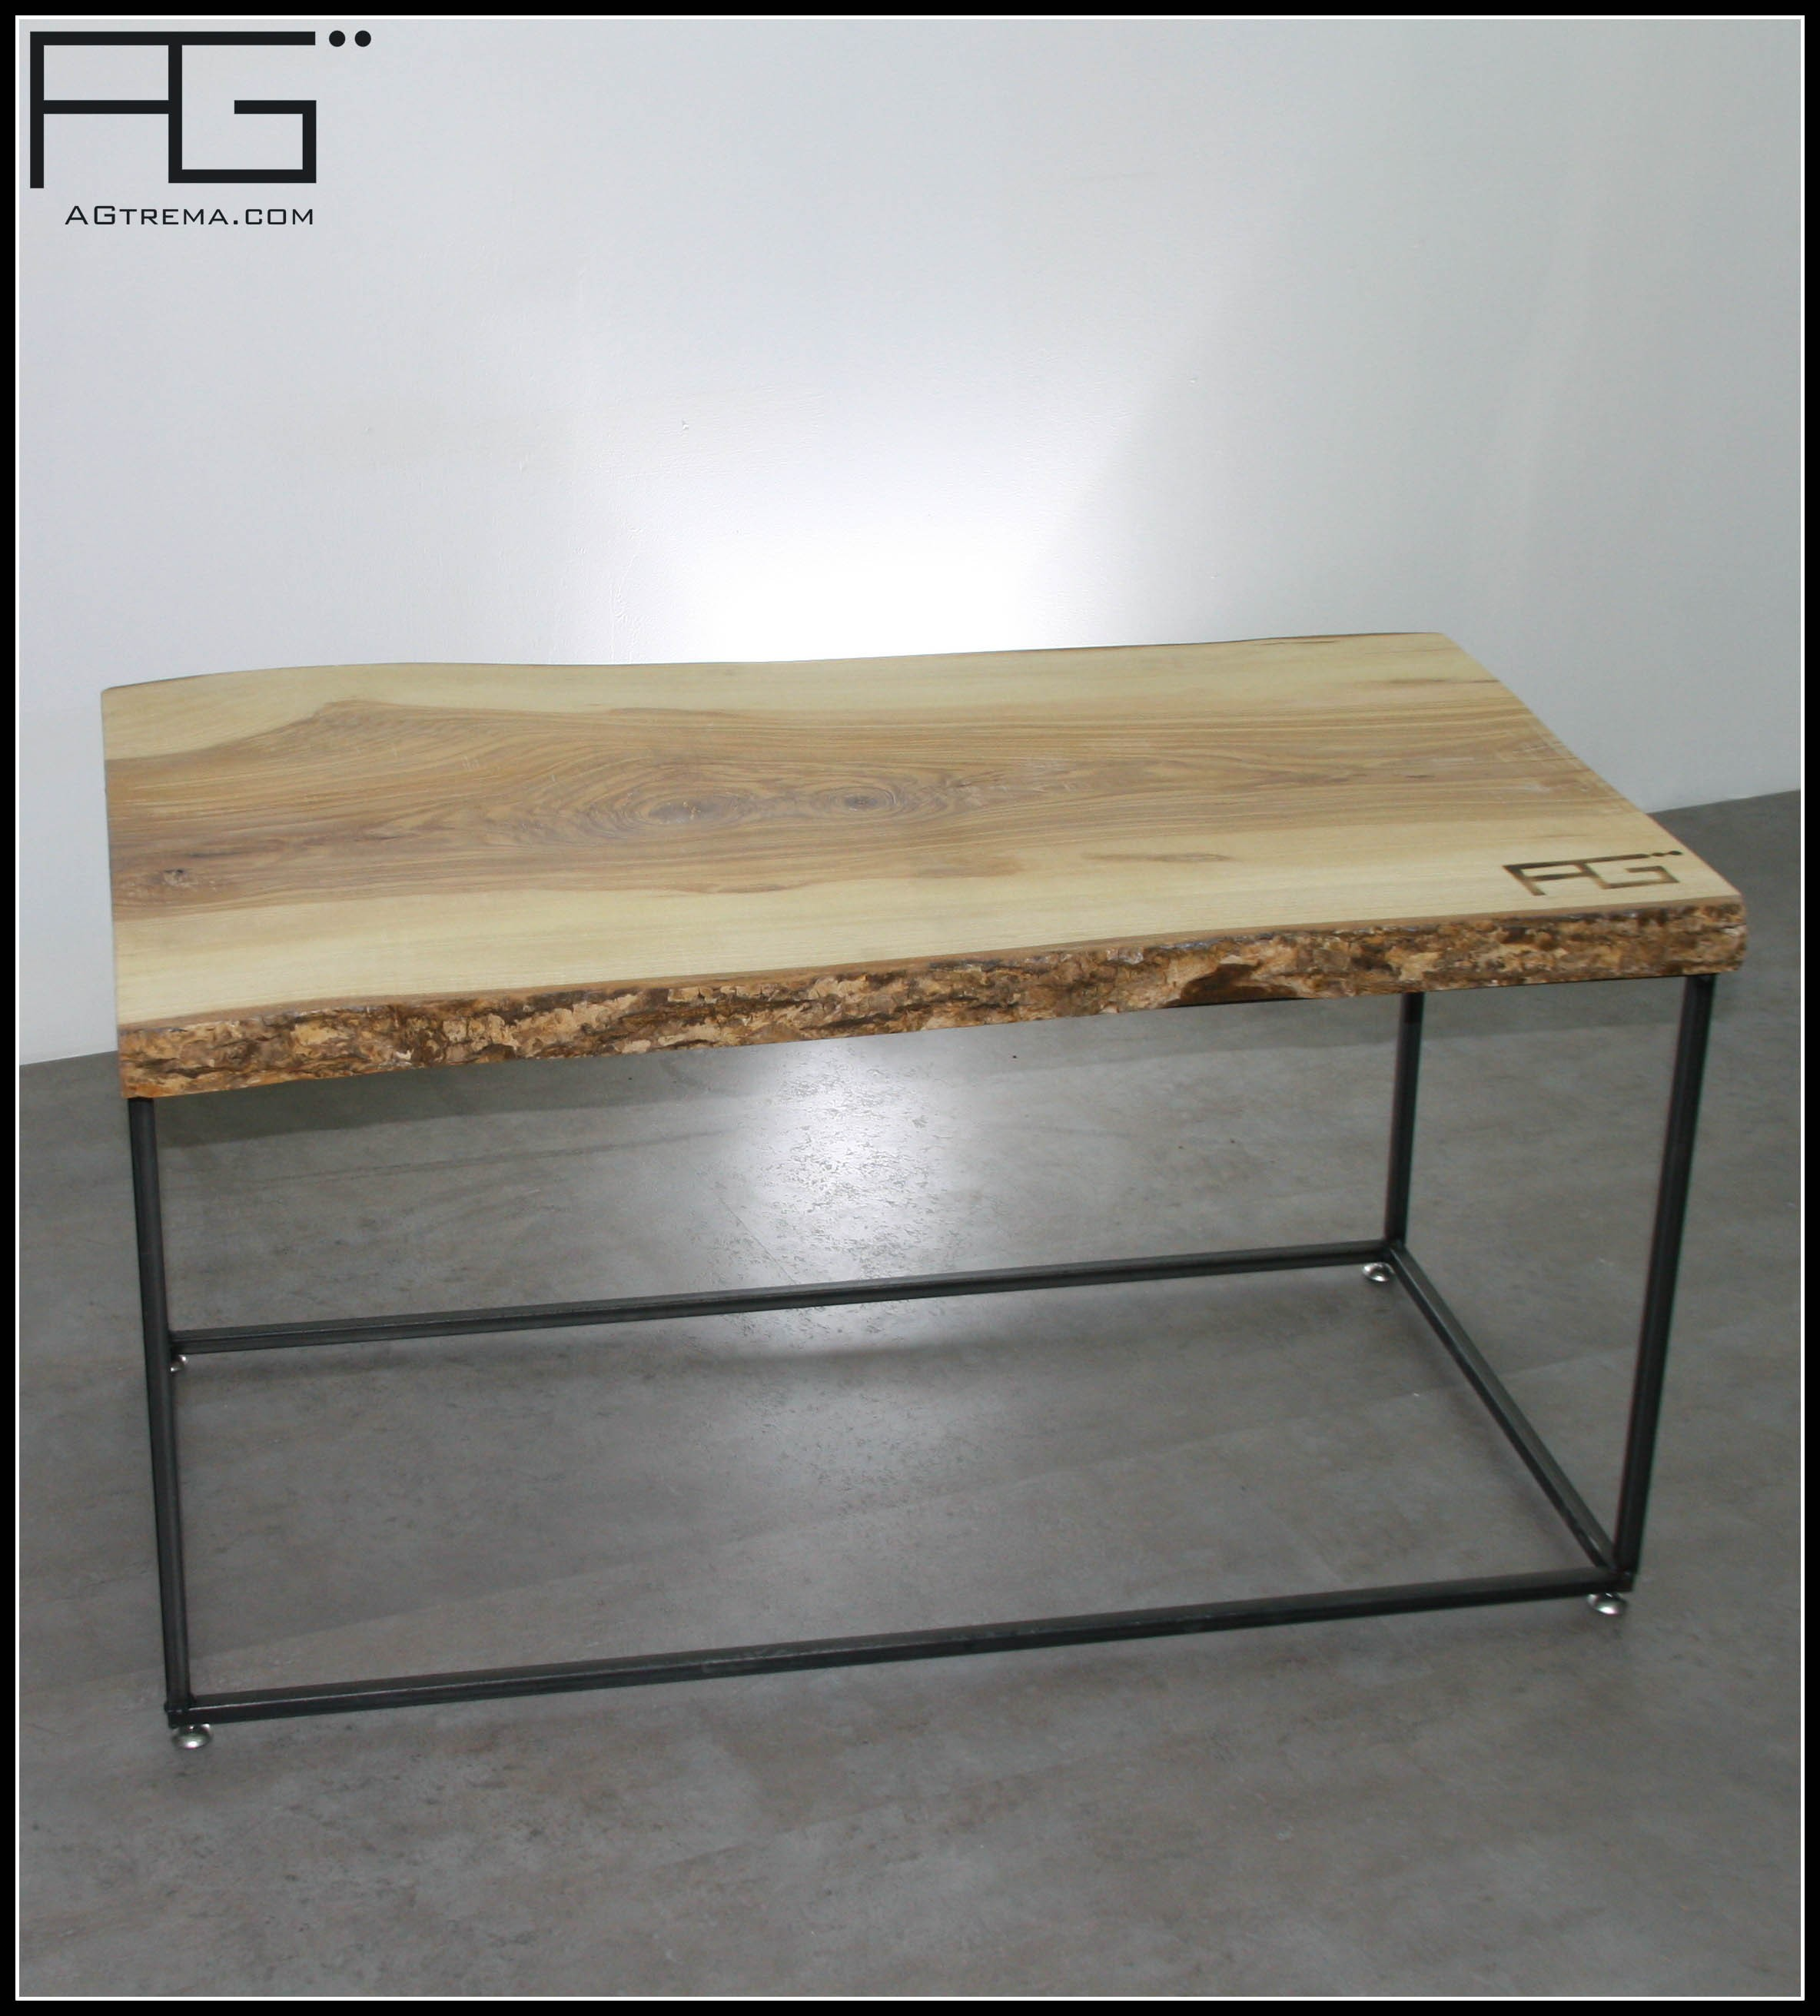 table-basse-industrielle-bords-brut-live-edge Frais De Table Basse Avec Rallonge